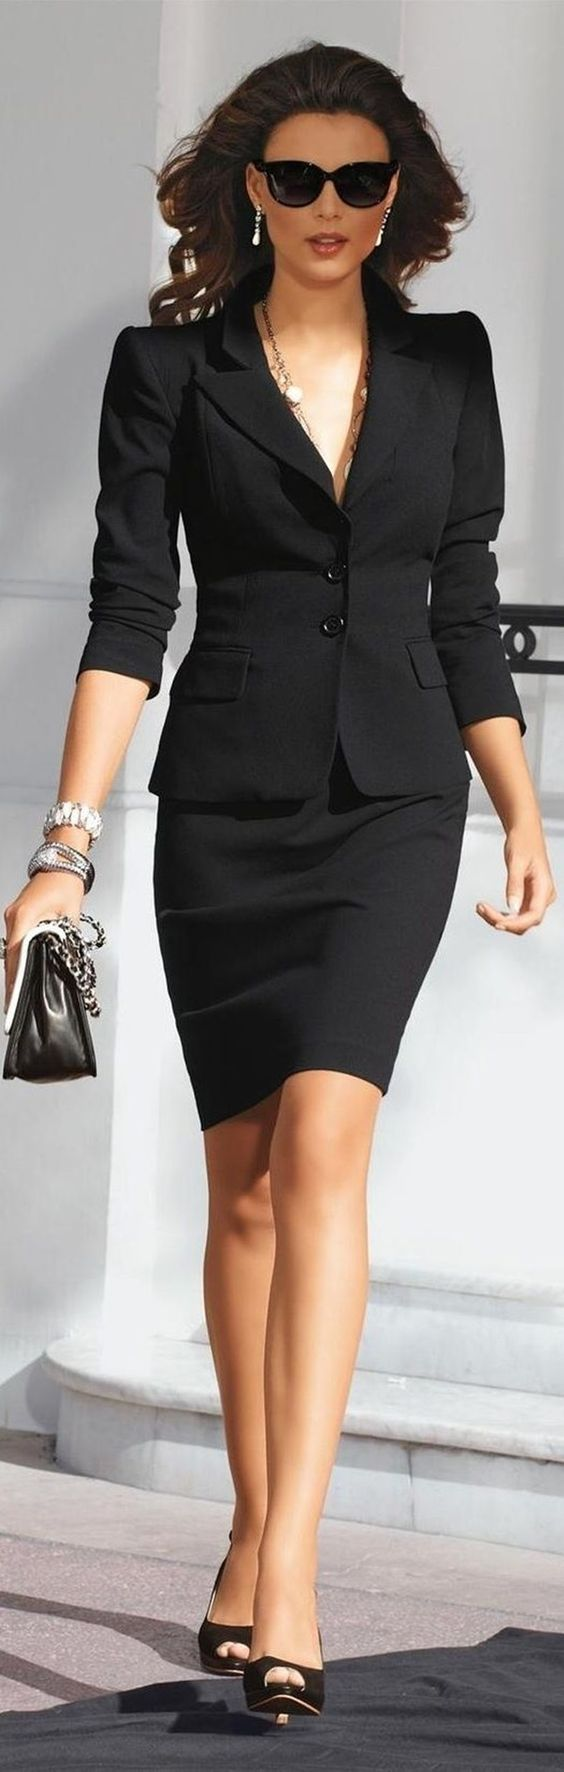 Fashionable work outfits for women  (8)